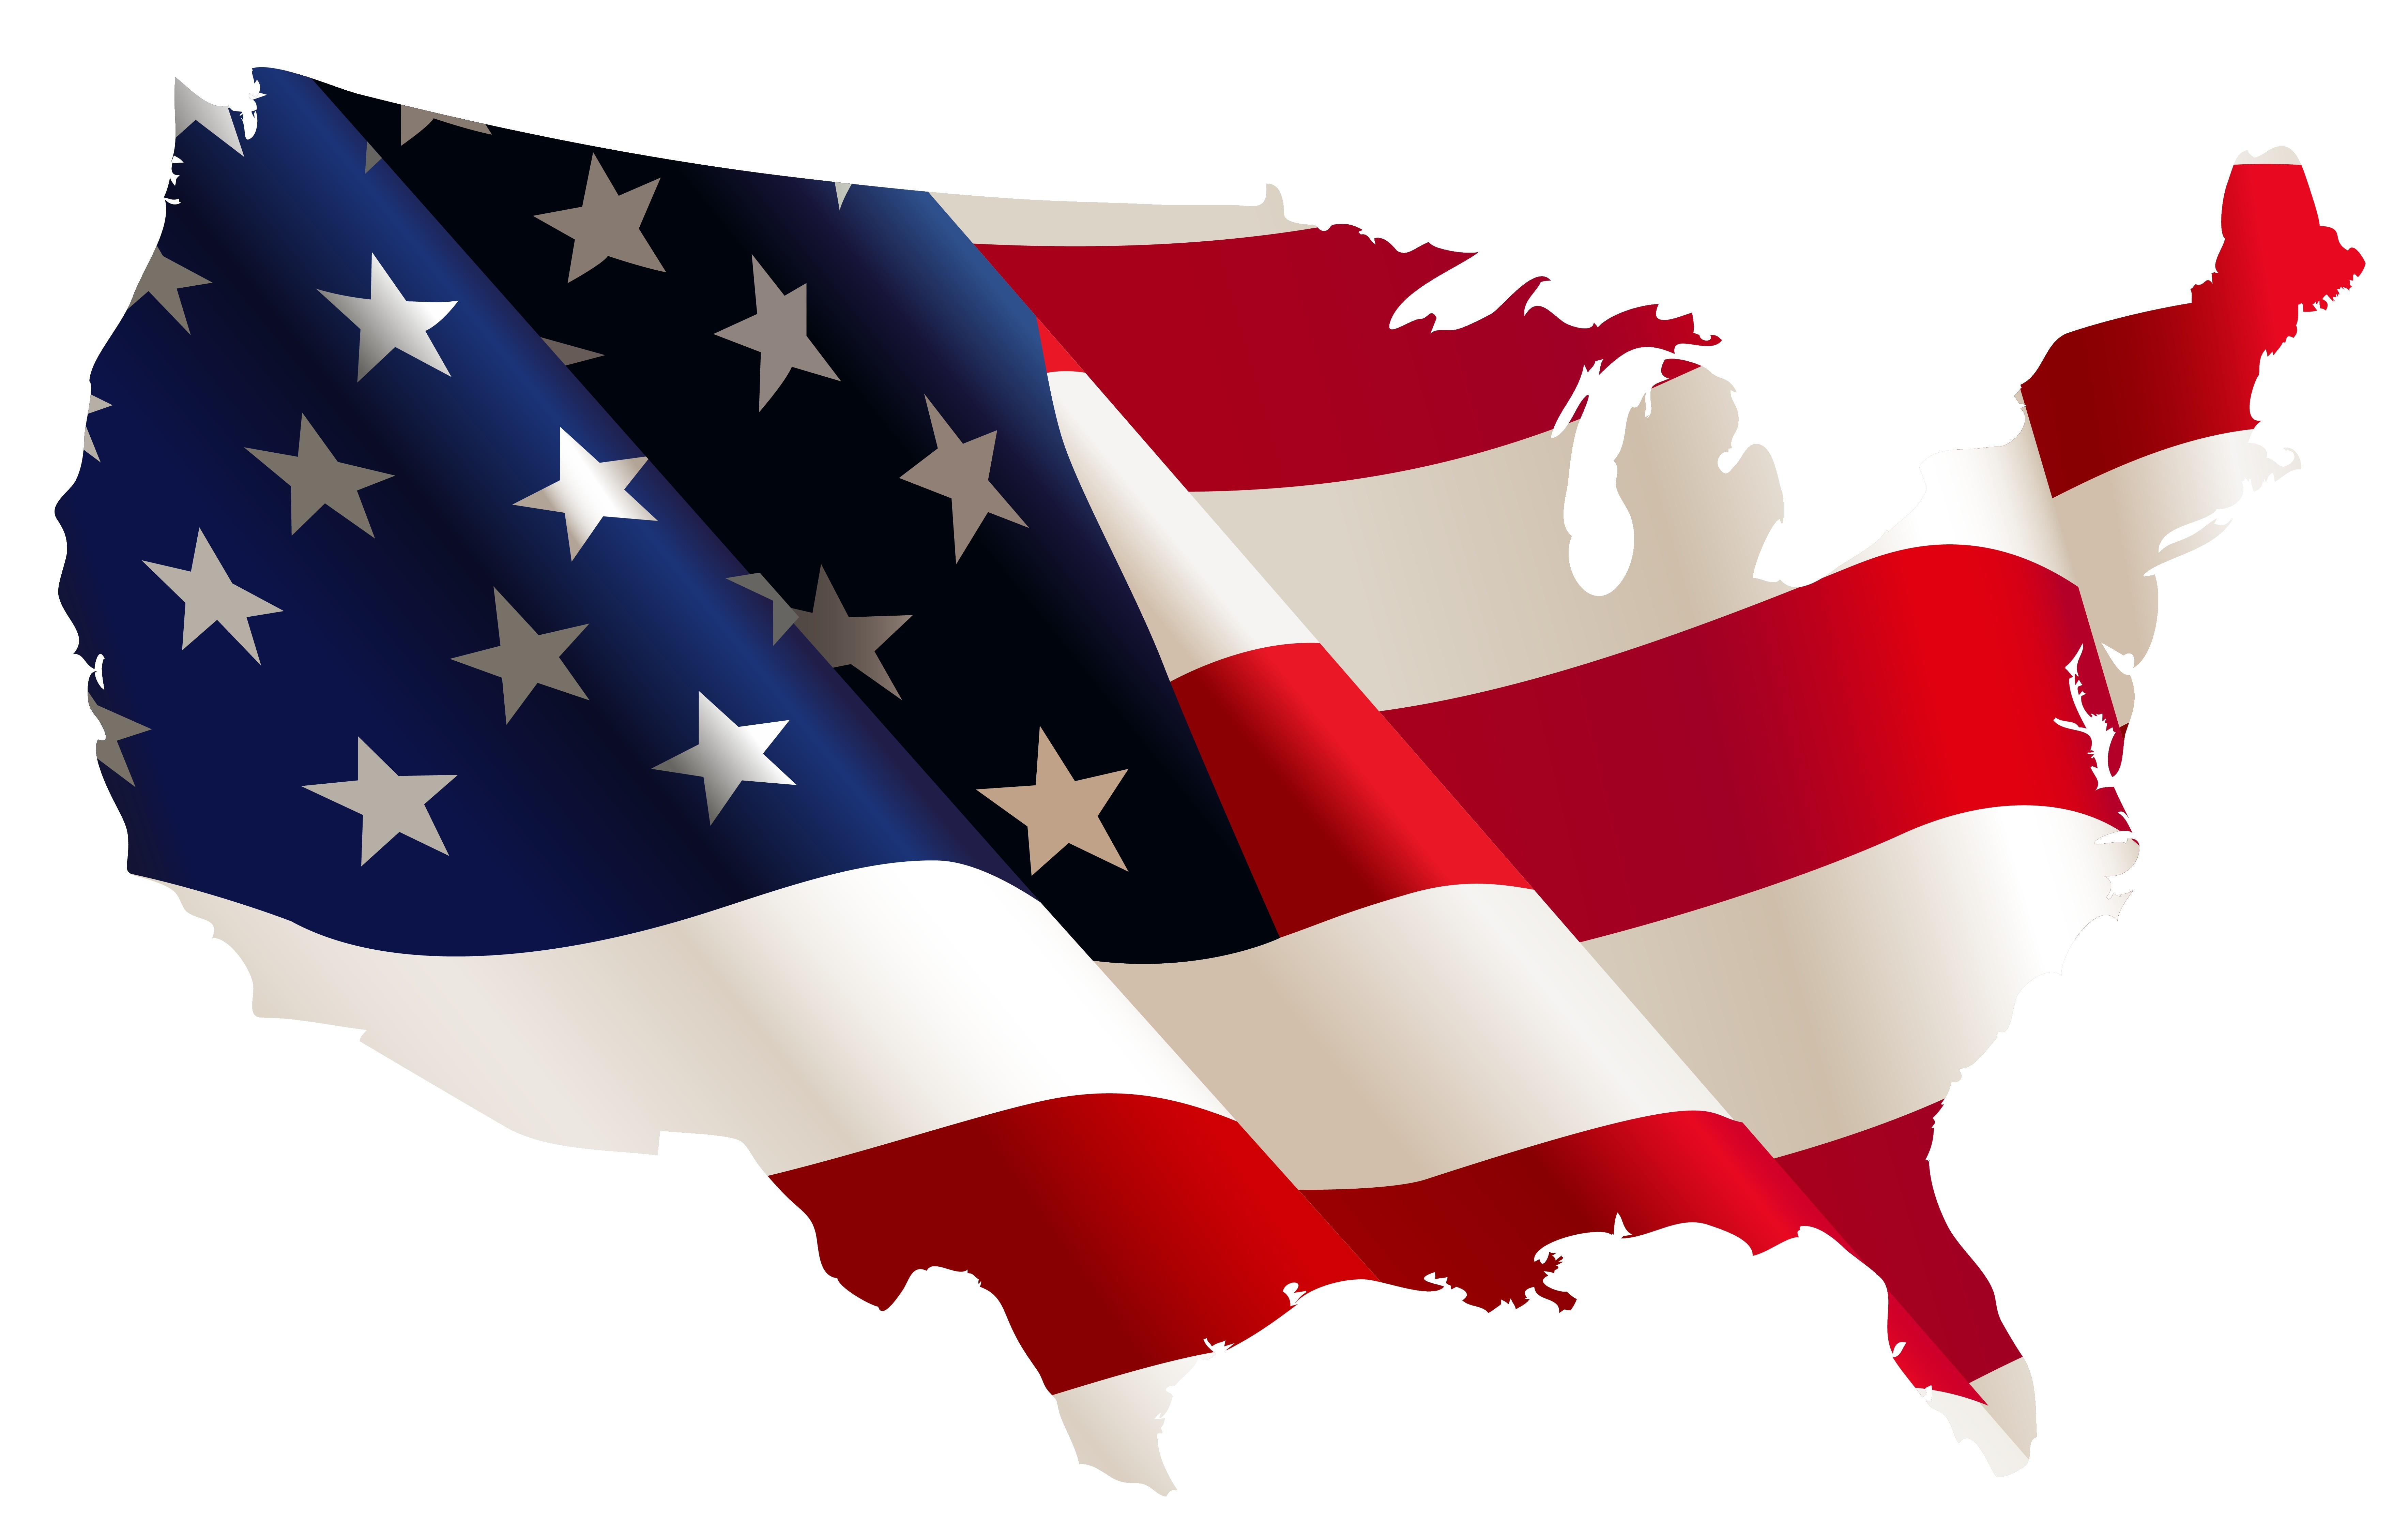 7066x4506 Awesome Us Map Clip Art Free The Giant Maps Cool Clipart Of Usa